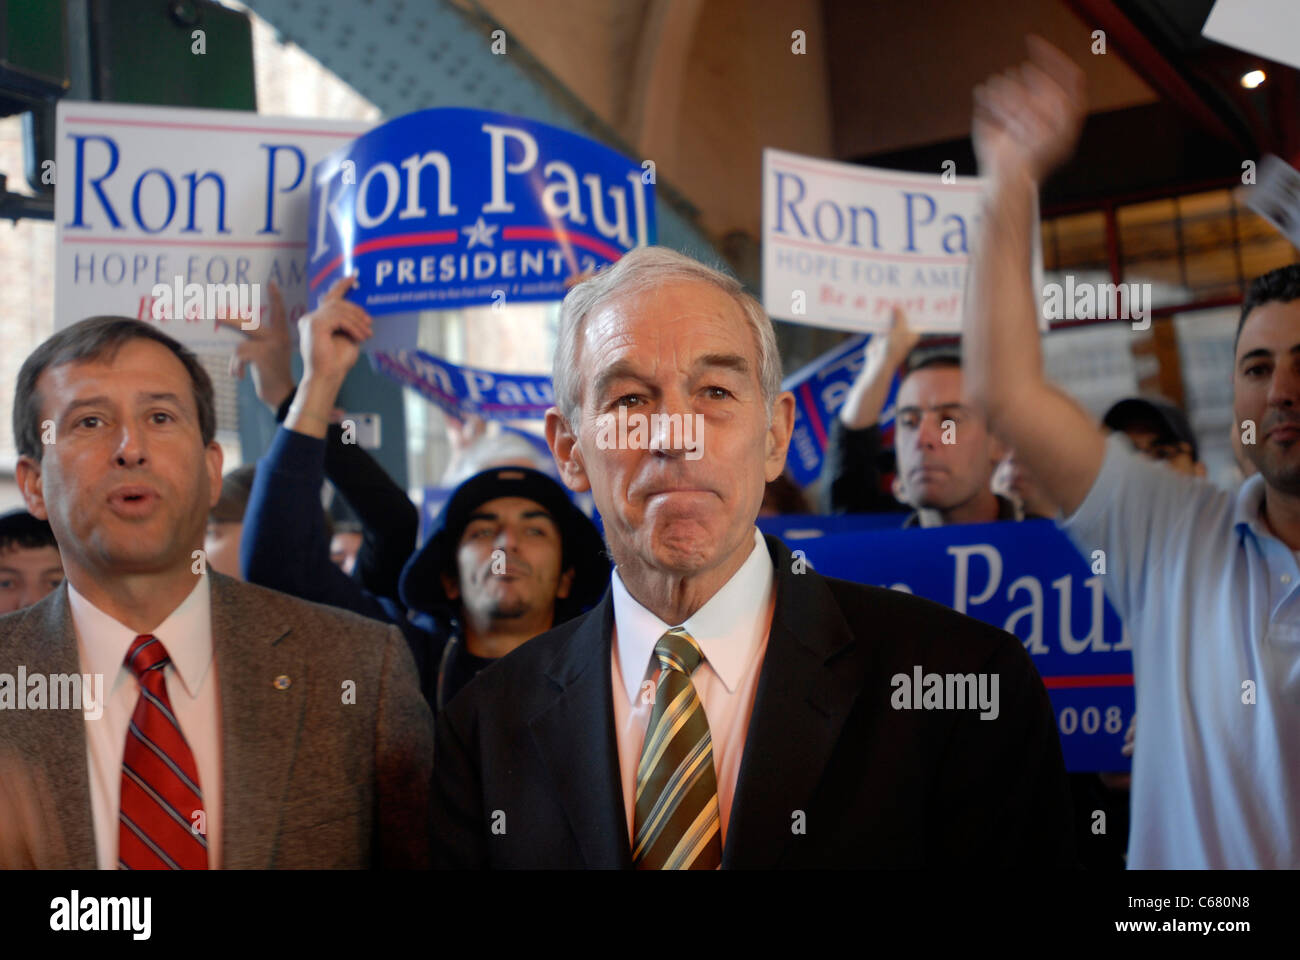 Republican presidential candidate Ron Paul greets supporters outside Grand Central Terminal - Stock Image